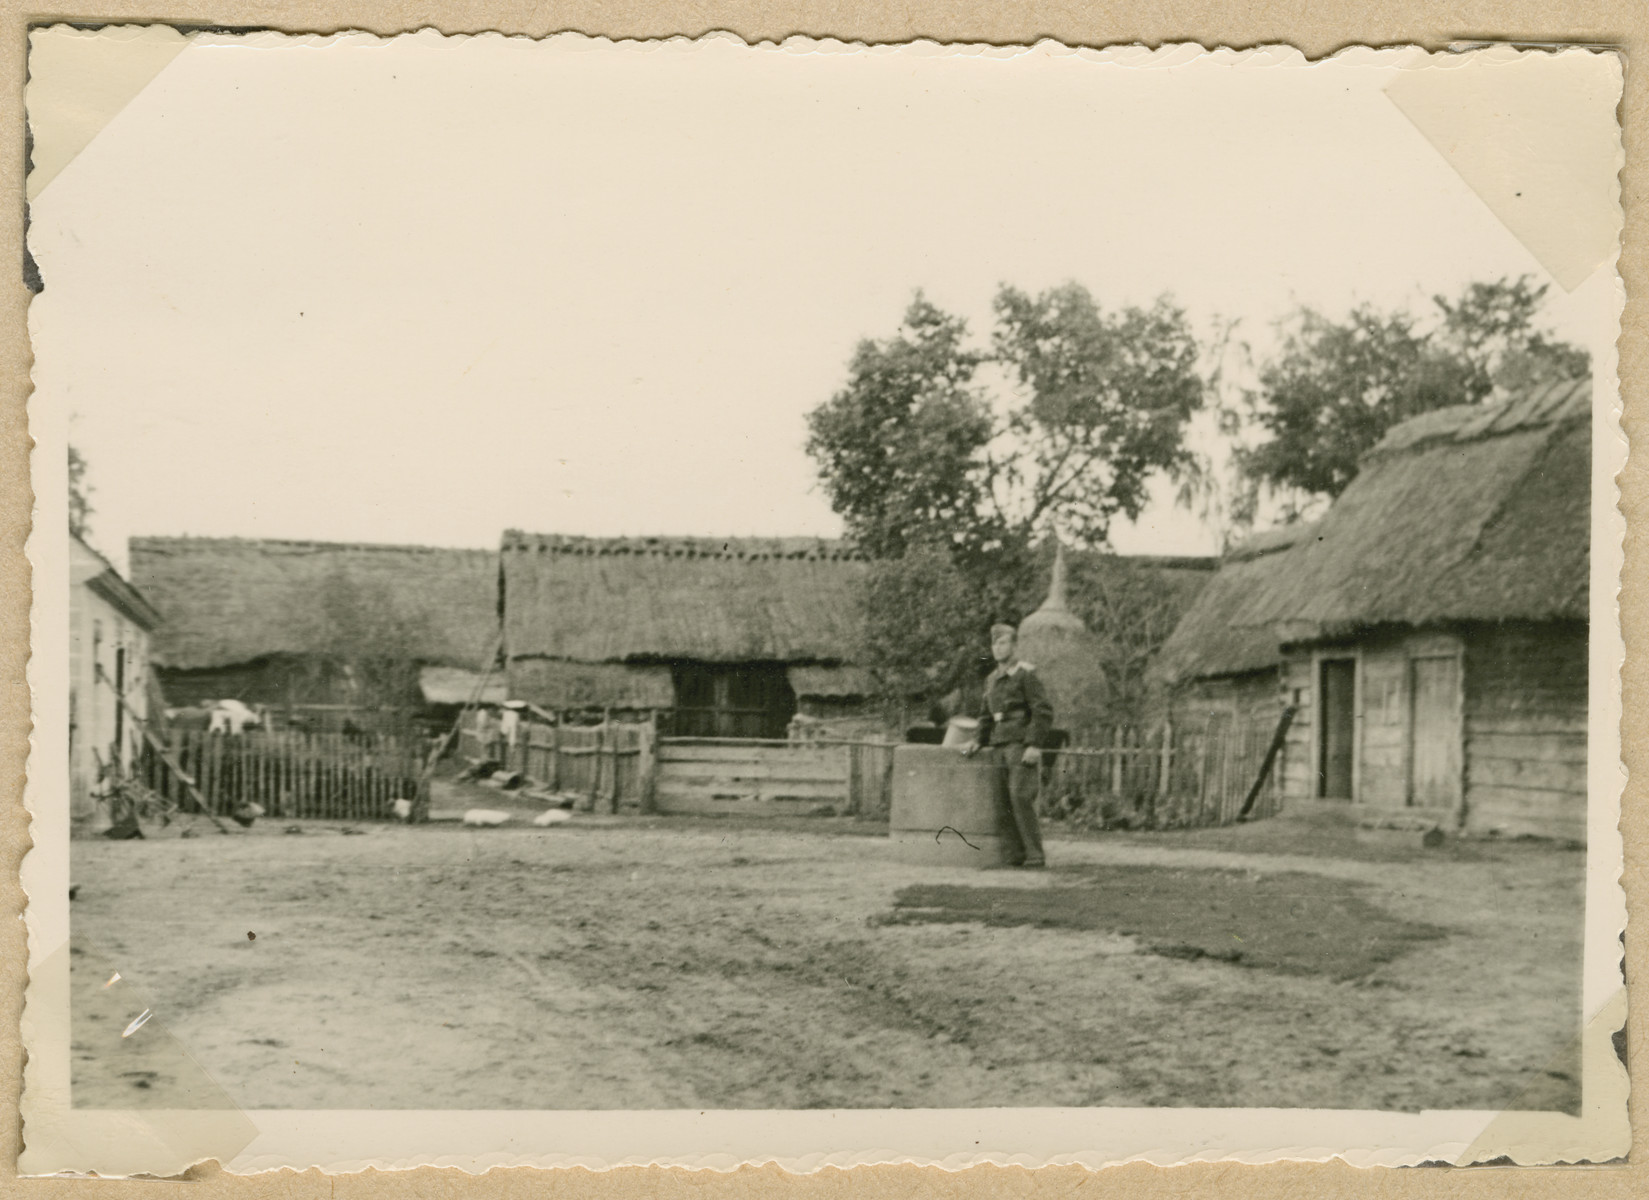 A German soldier stands outside buildings with thatched roofs in Irena.